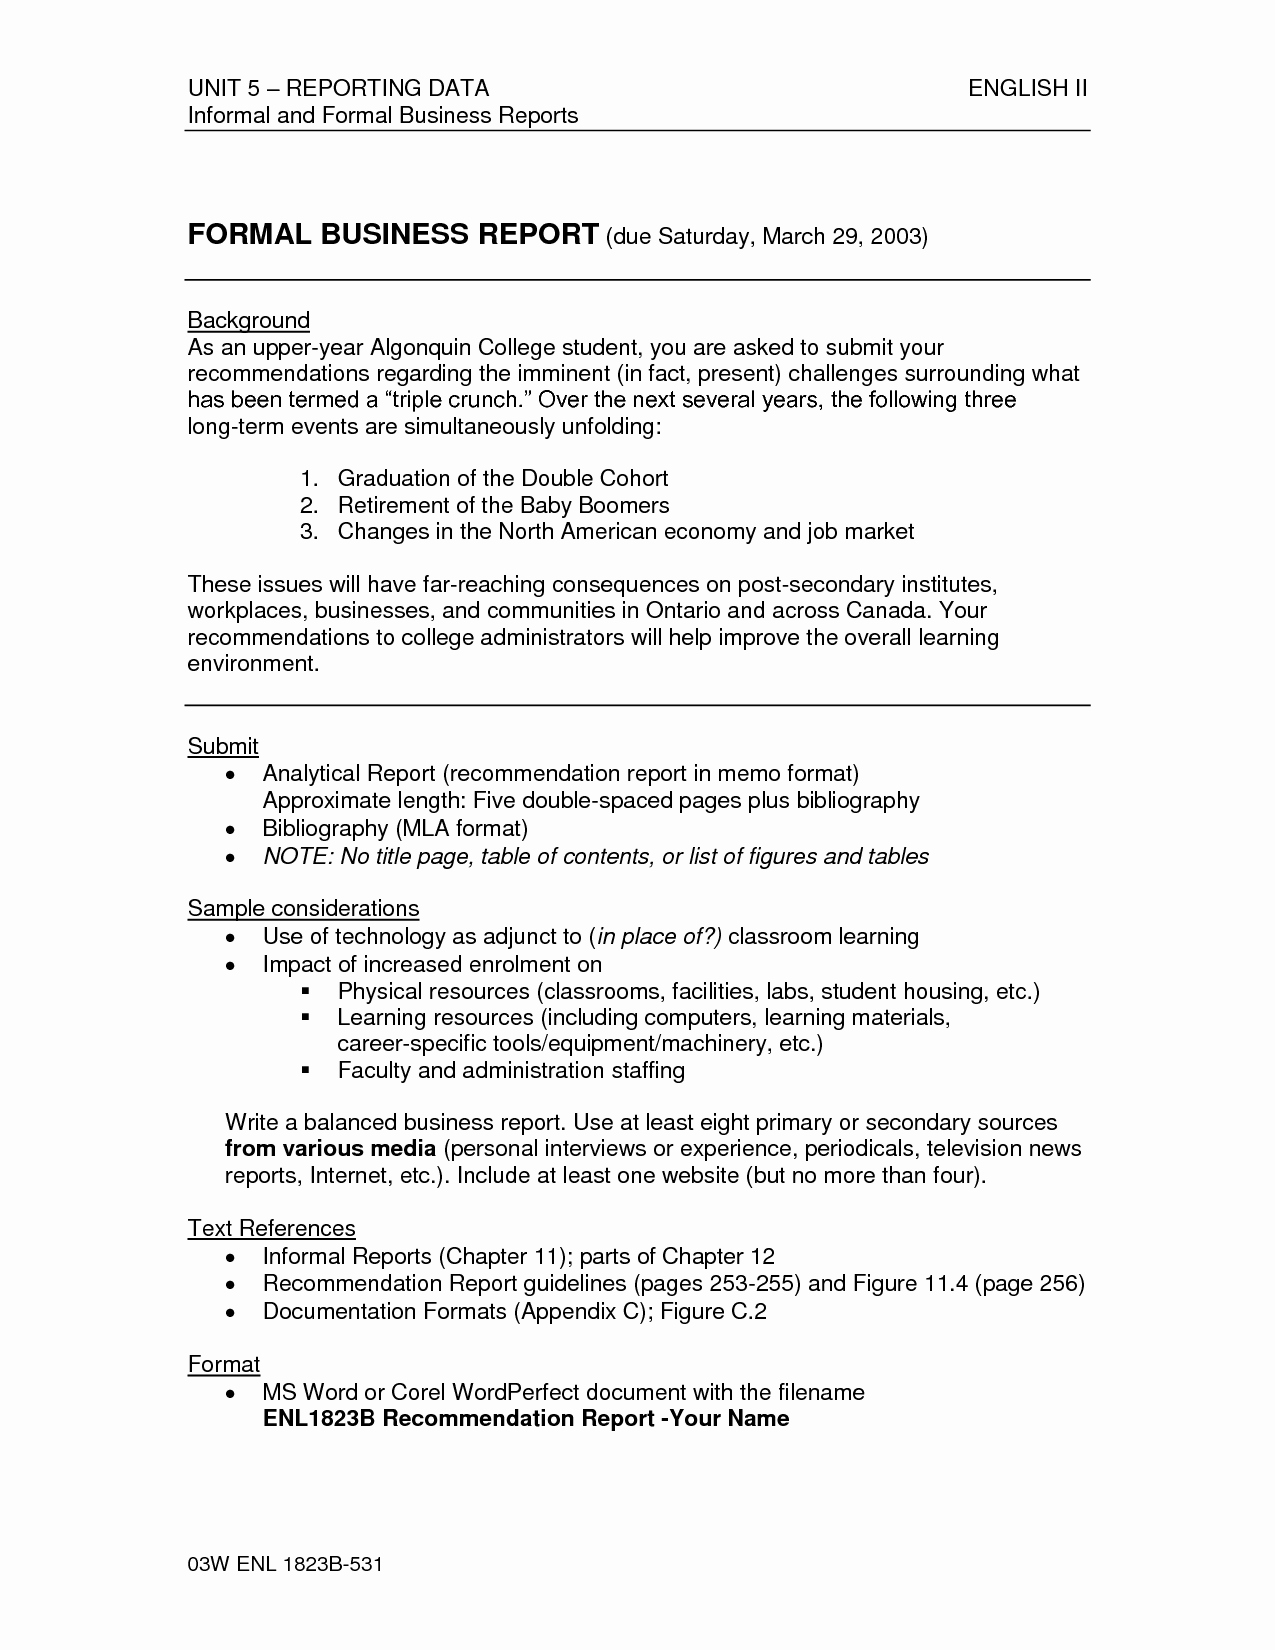 Formal Business Report Template New Other Template Category Page 86 Spelplus